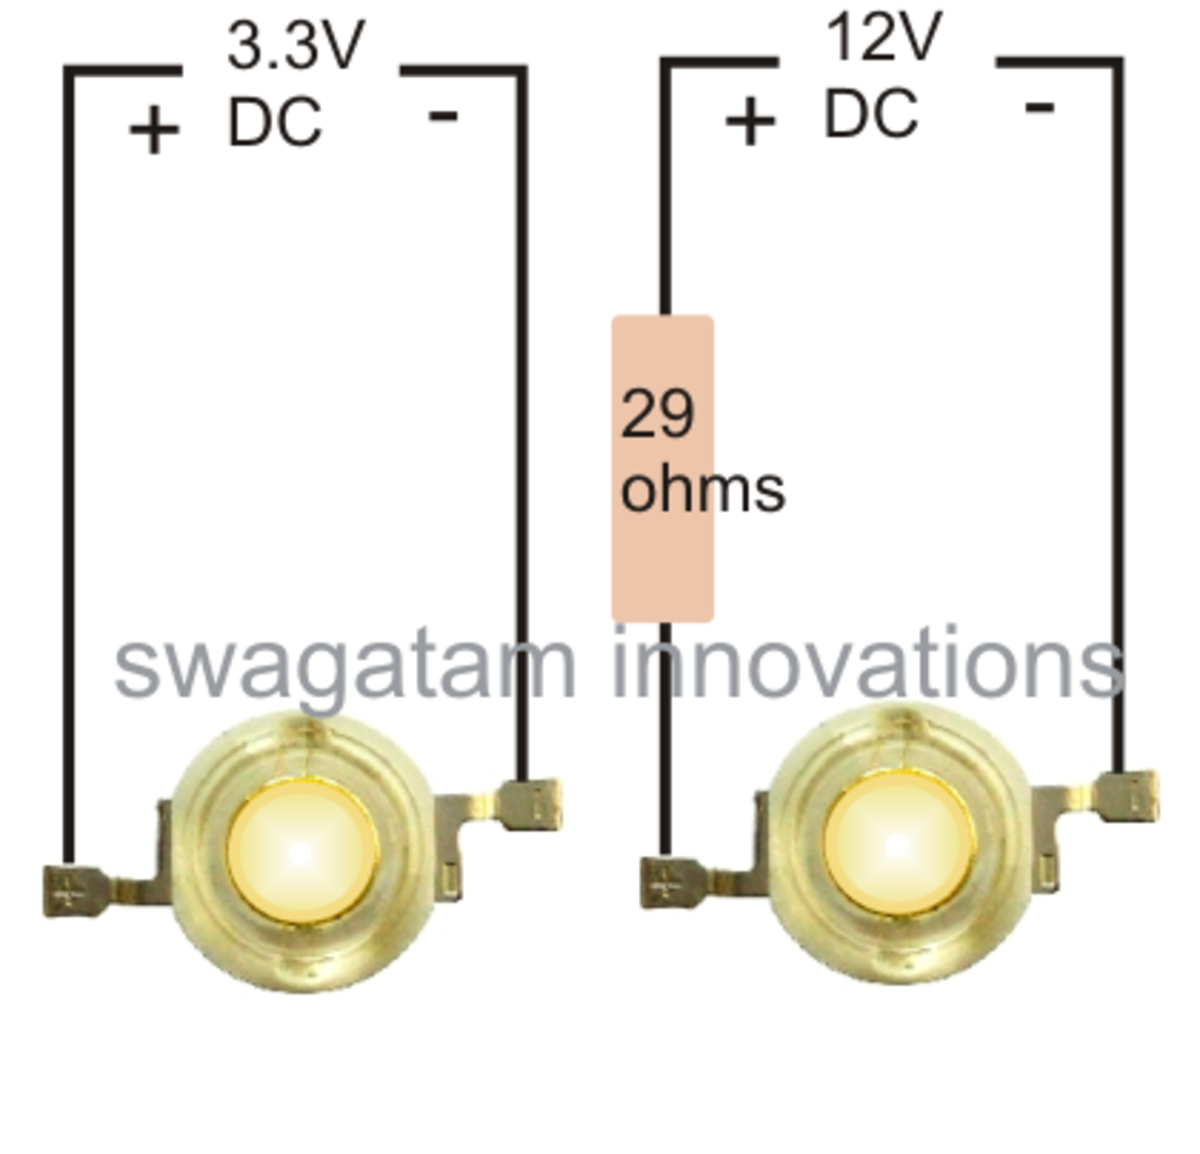 How To Use 1 Watt Leds Hubpages